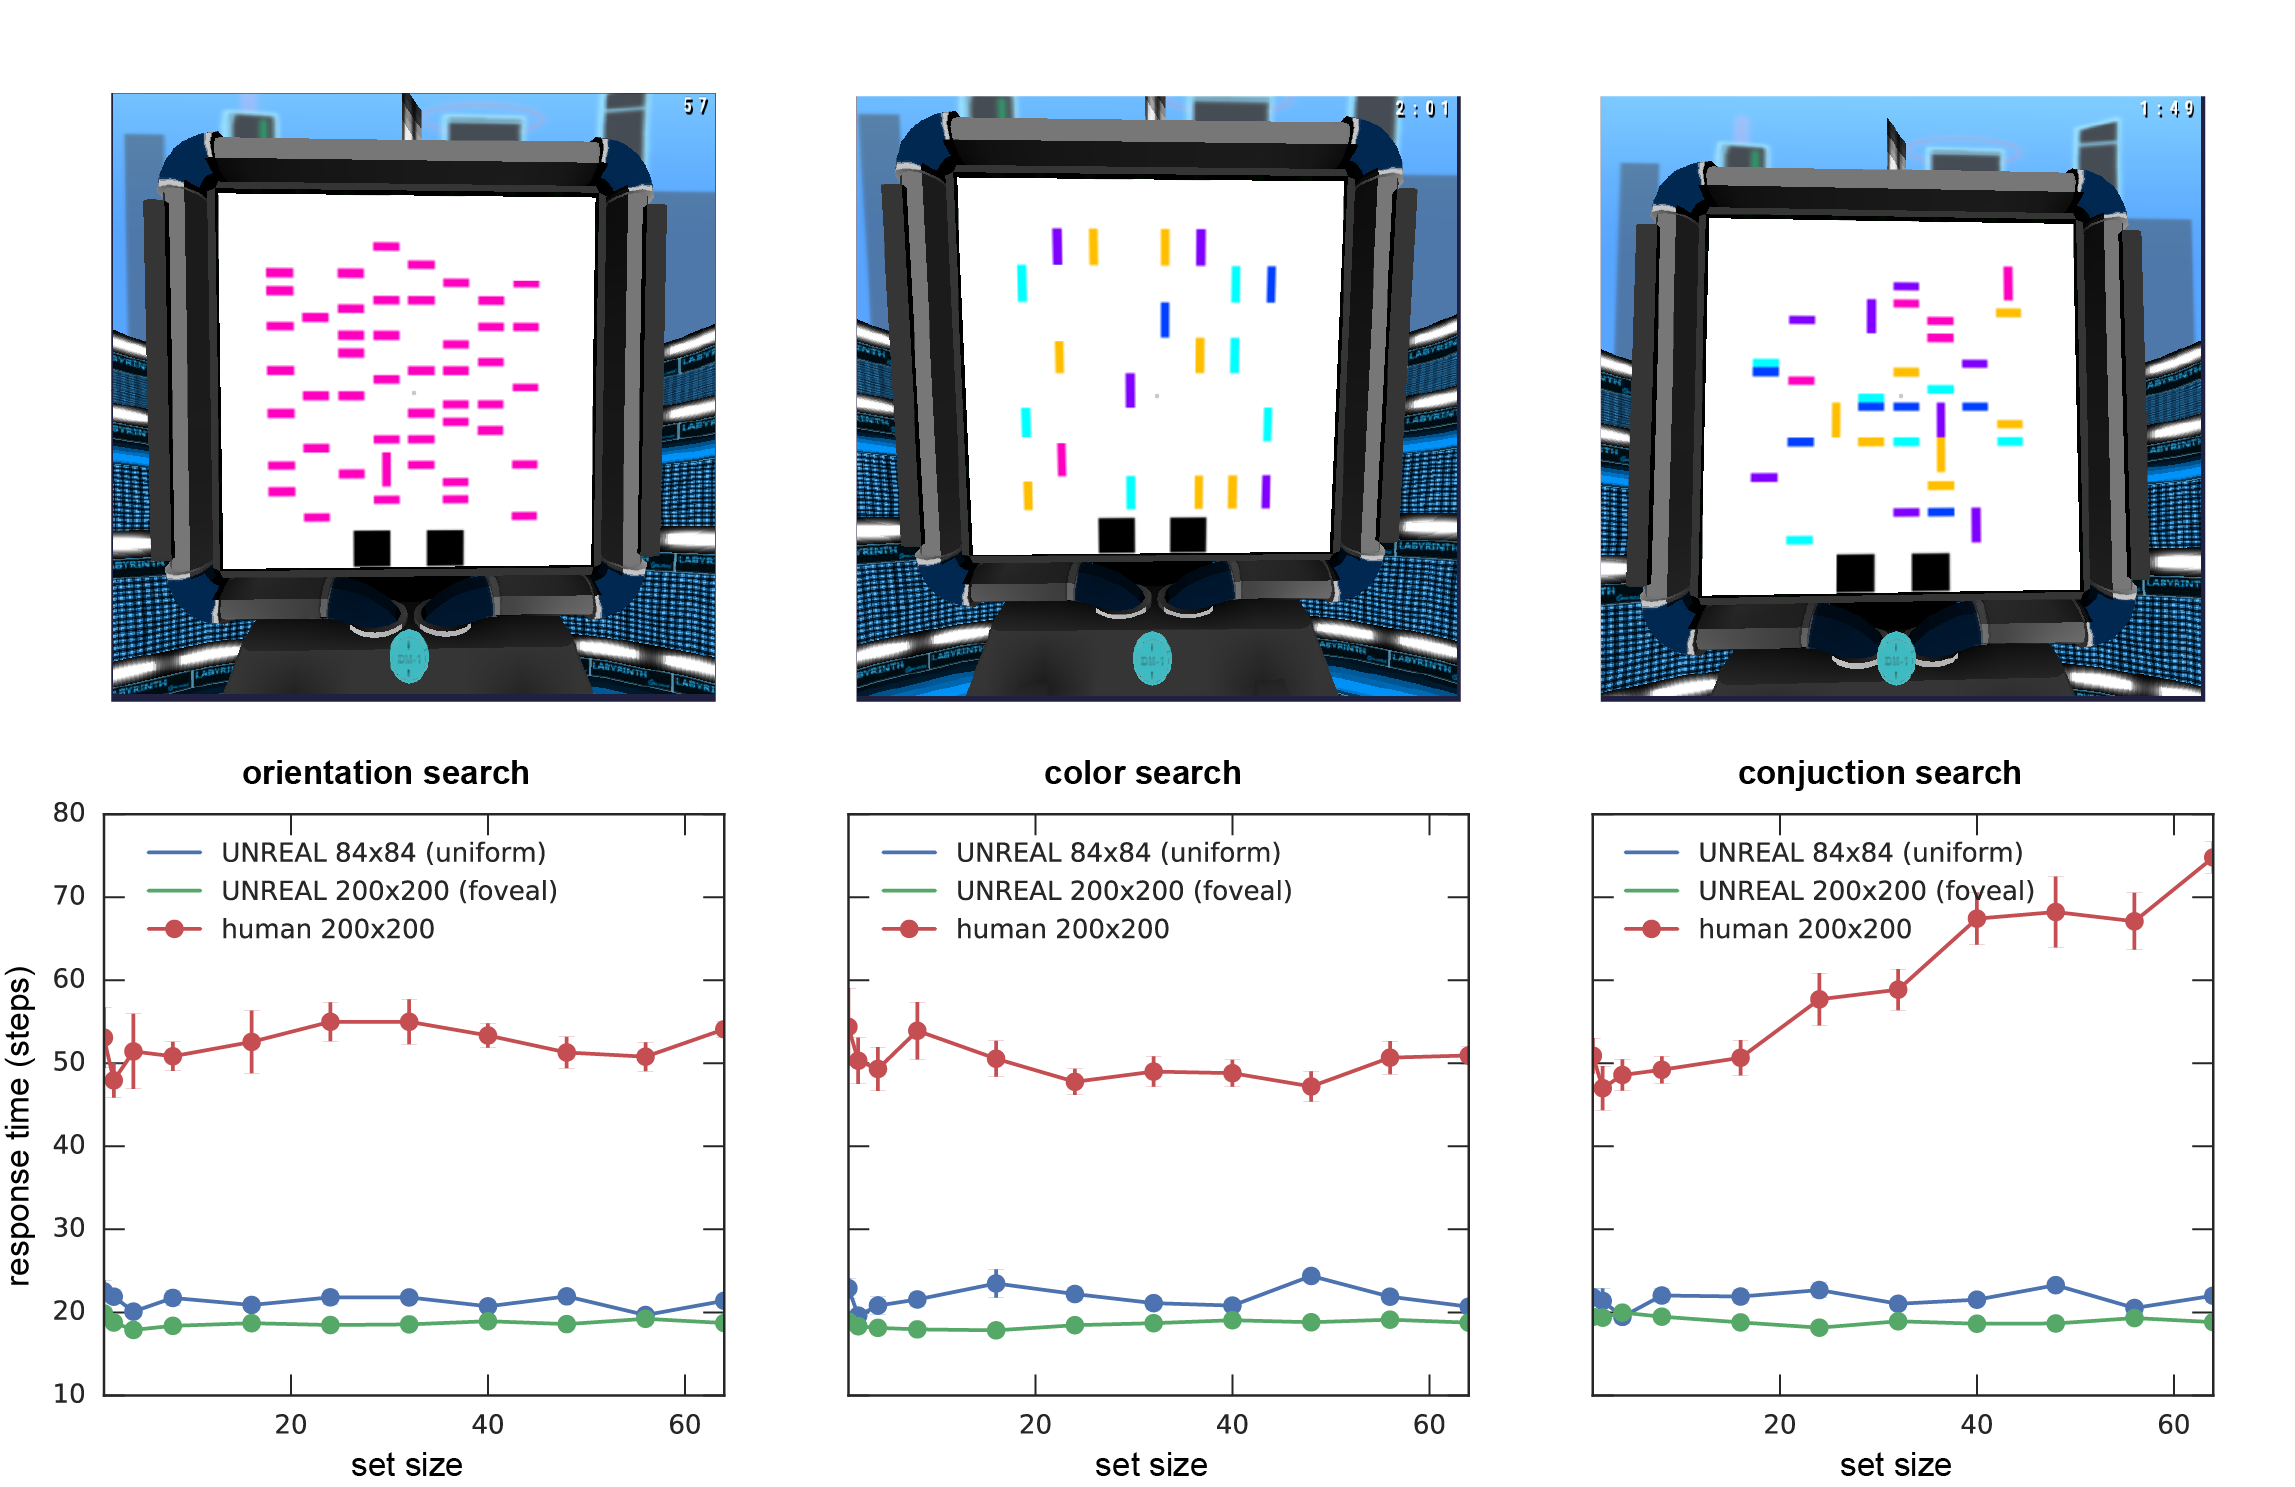 Visual search reaction times: orientation search, color search, and conjunction search. Human reaction times for orientation search and color search are independent of set size but scale linearly with set size for conjunction search. This replicates a well-known result in the literature